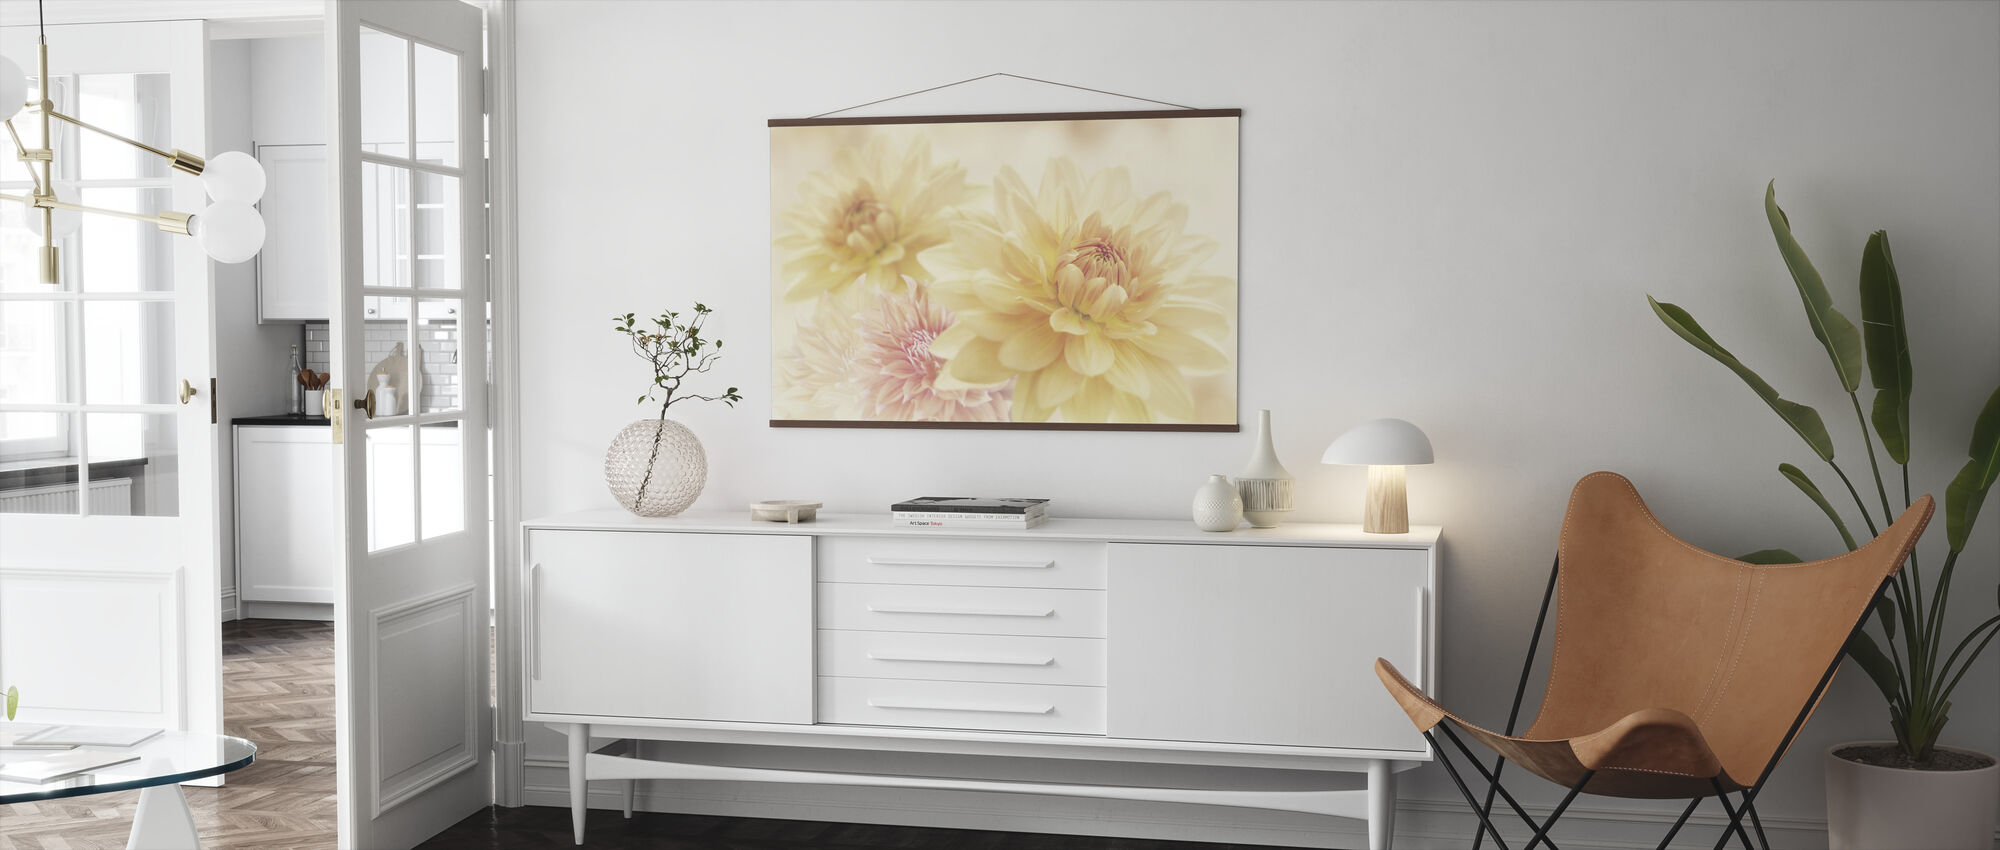 Fair Dahlias - Poster - Living Room